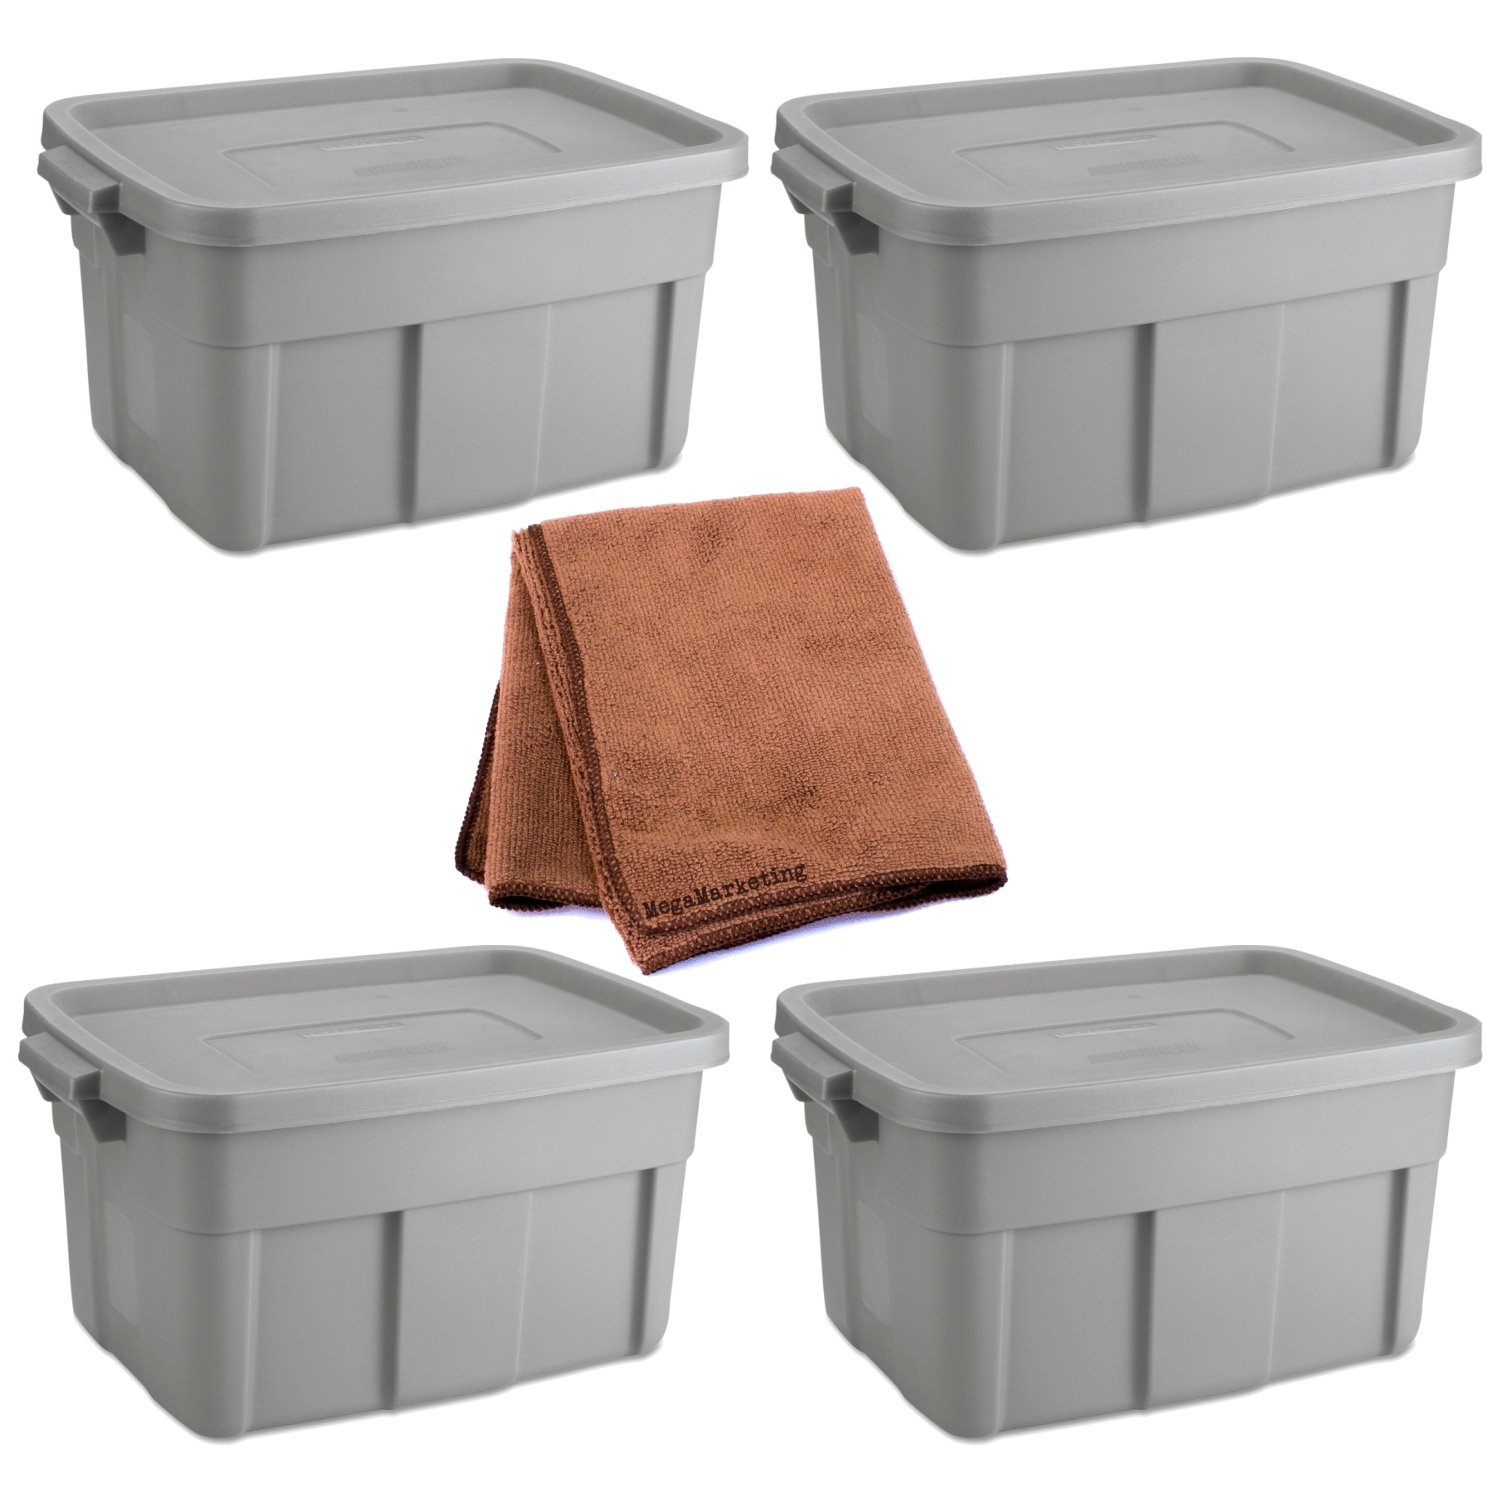 Rubbermaid 14-Gallon Roughneck Storage Box Tote, Steel Gray, Case of 4 with Cleaning Cloth